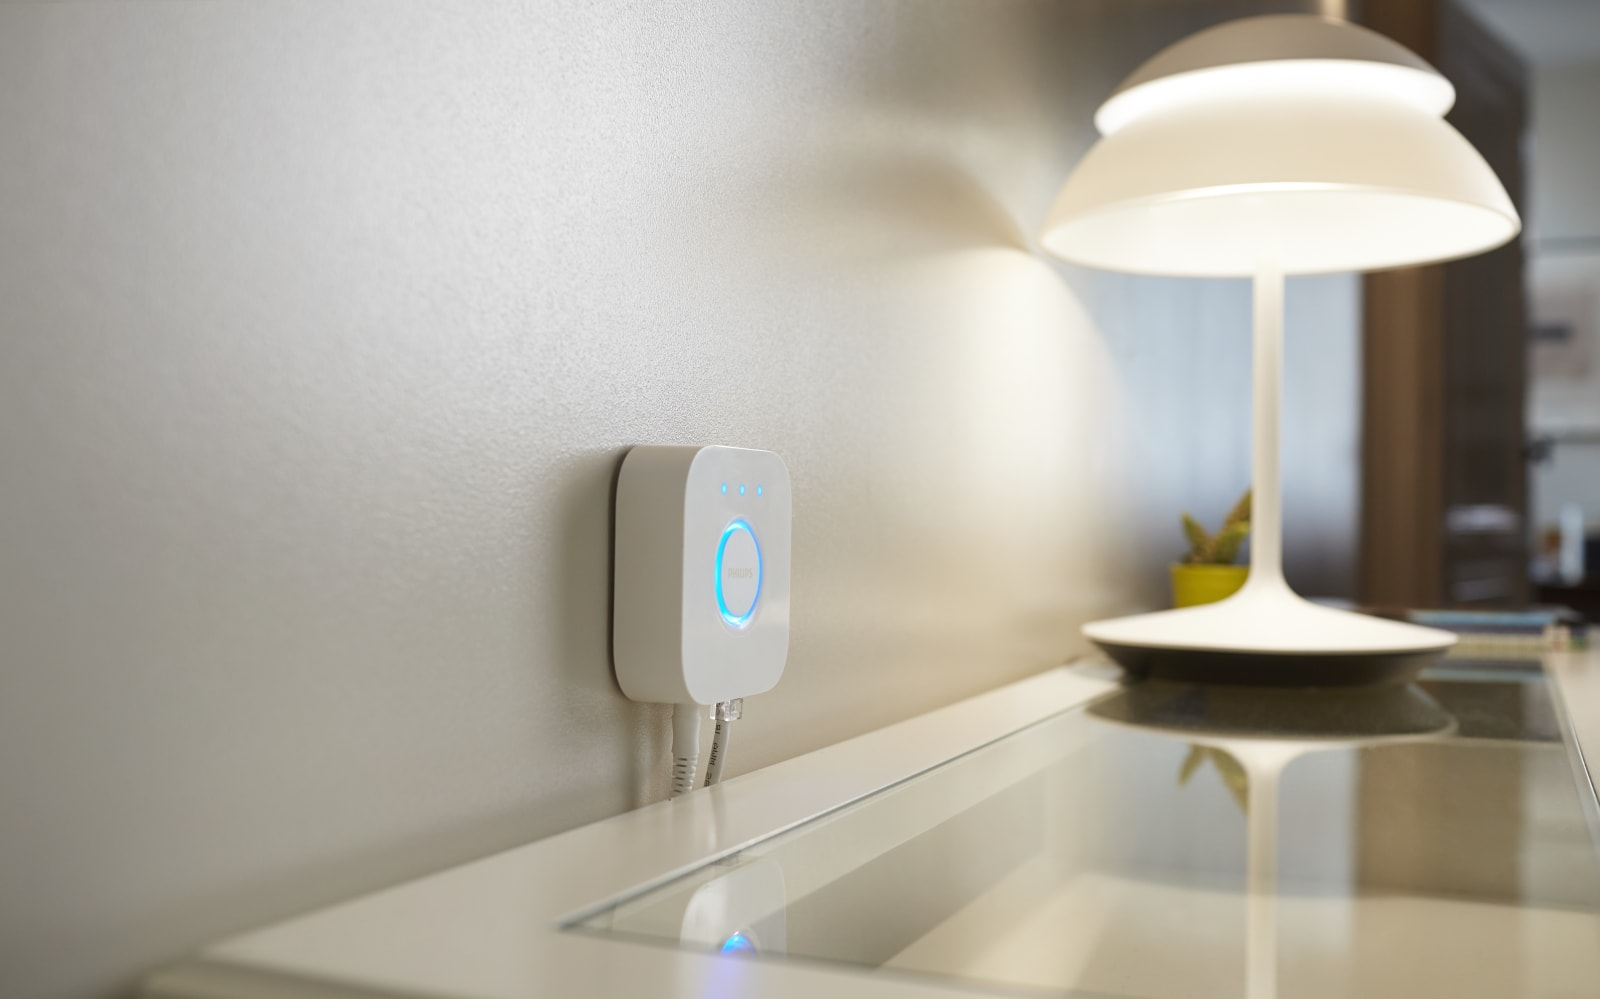 Philips patched a longstanding Hue bulb security flaw